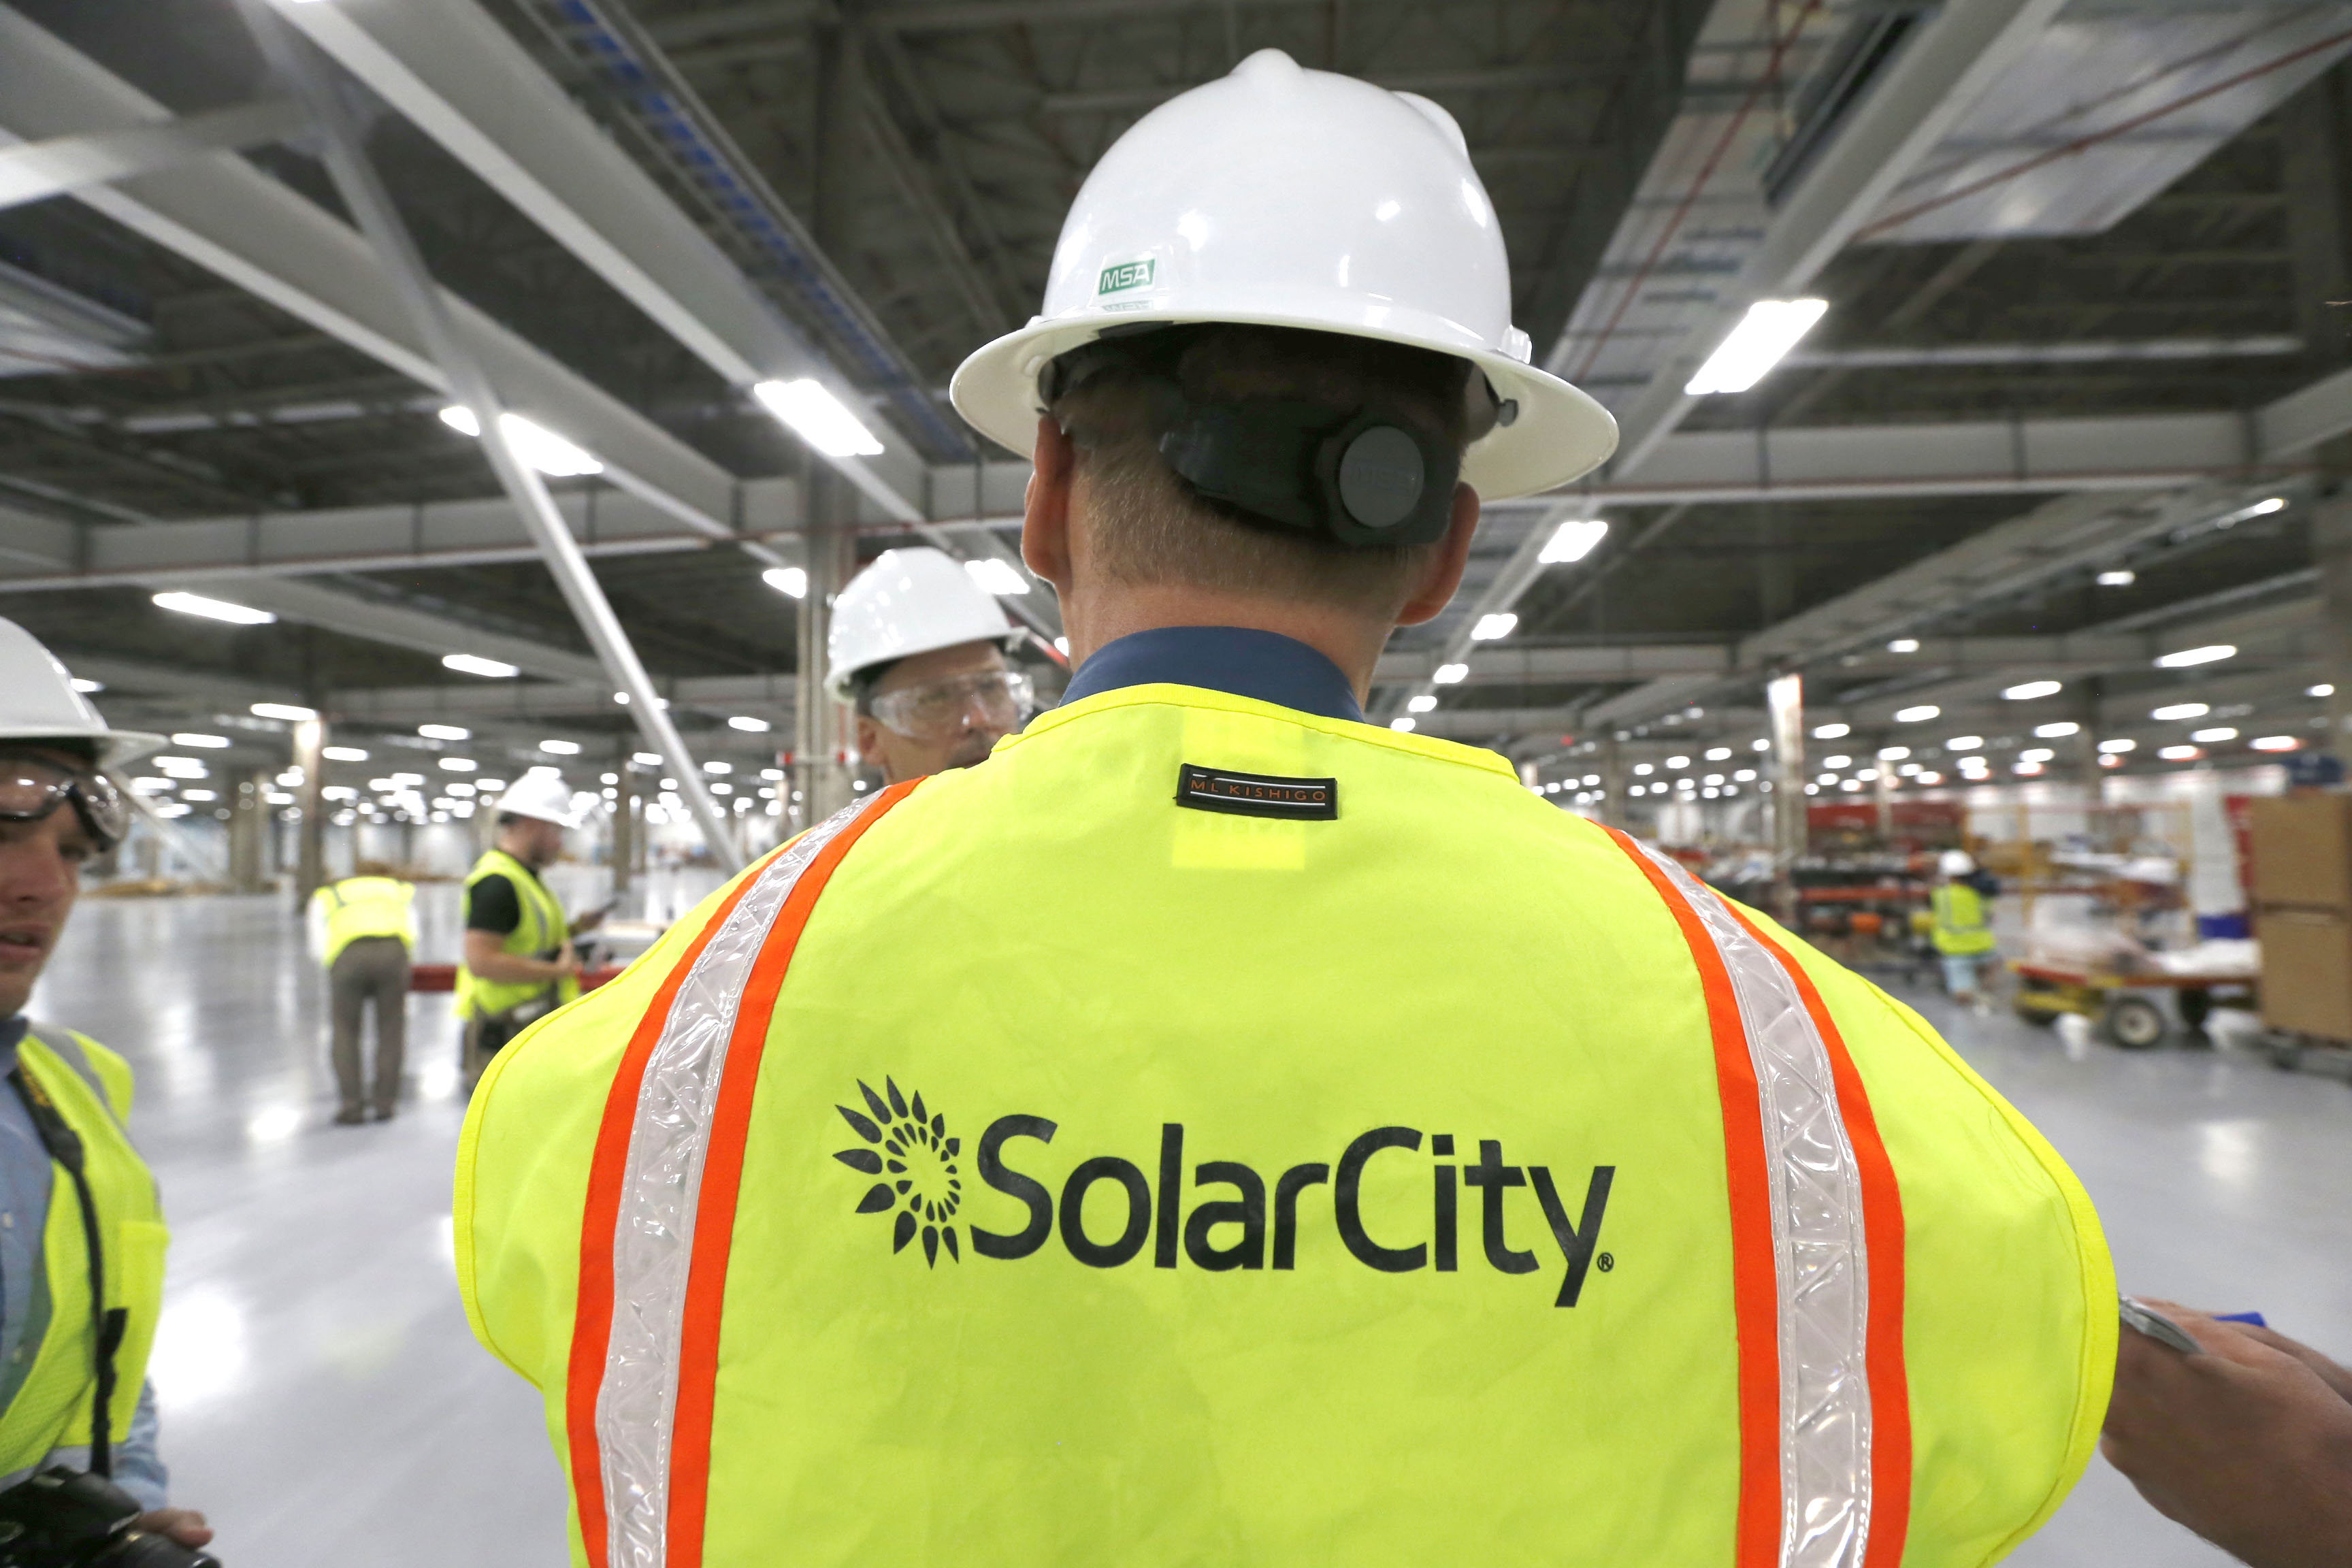 SolarCity to pay $29.5 million to settle federal probe